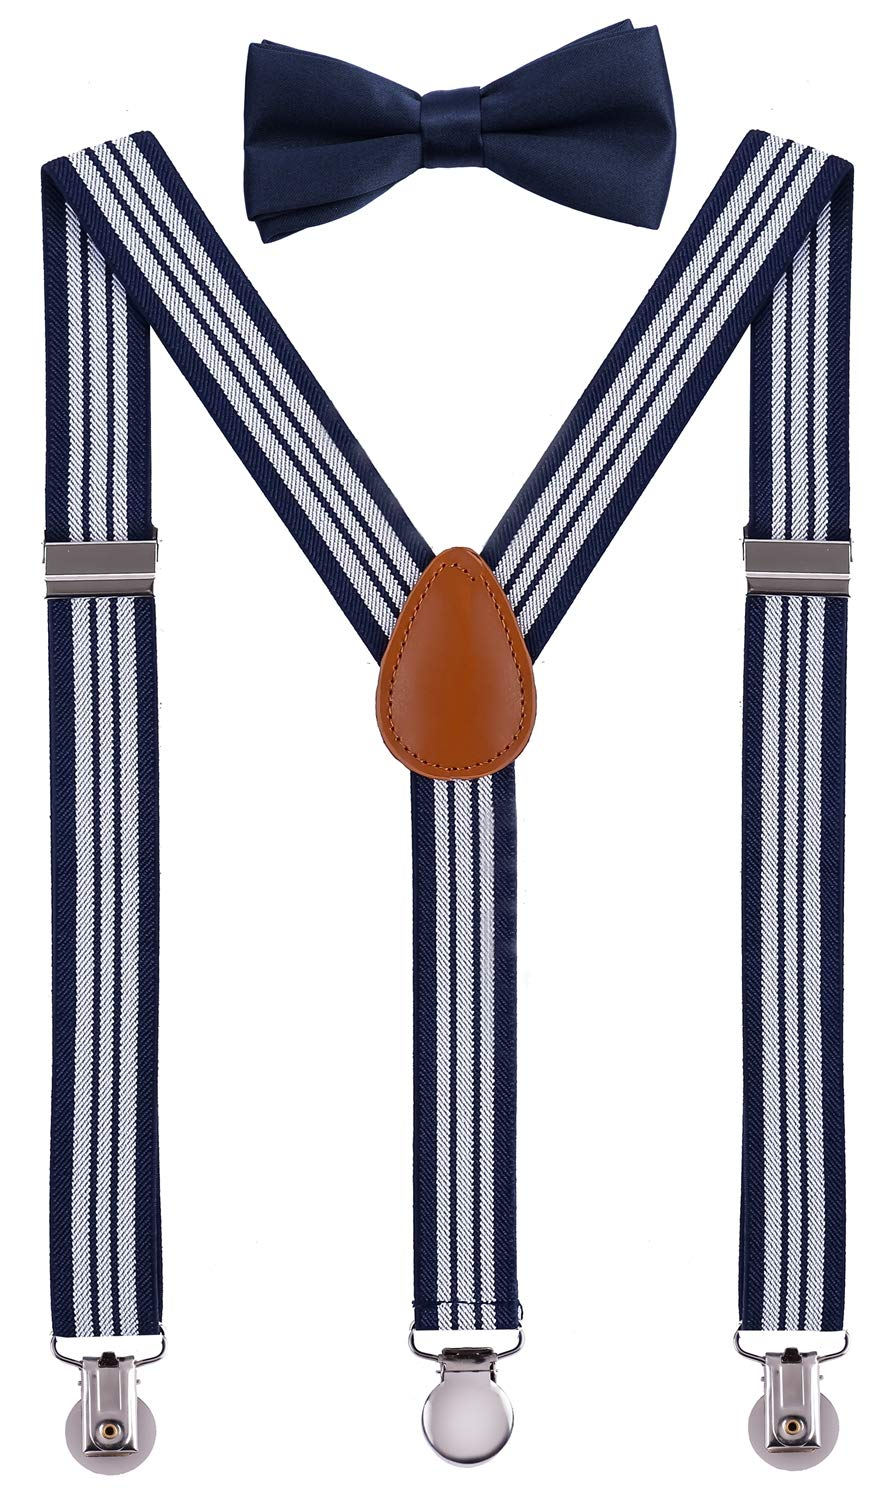 SUNNYTREE Kids' Suspenders Adjustable Y Back with Bow Tie Set 30 inches Navy Stripe